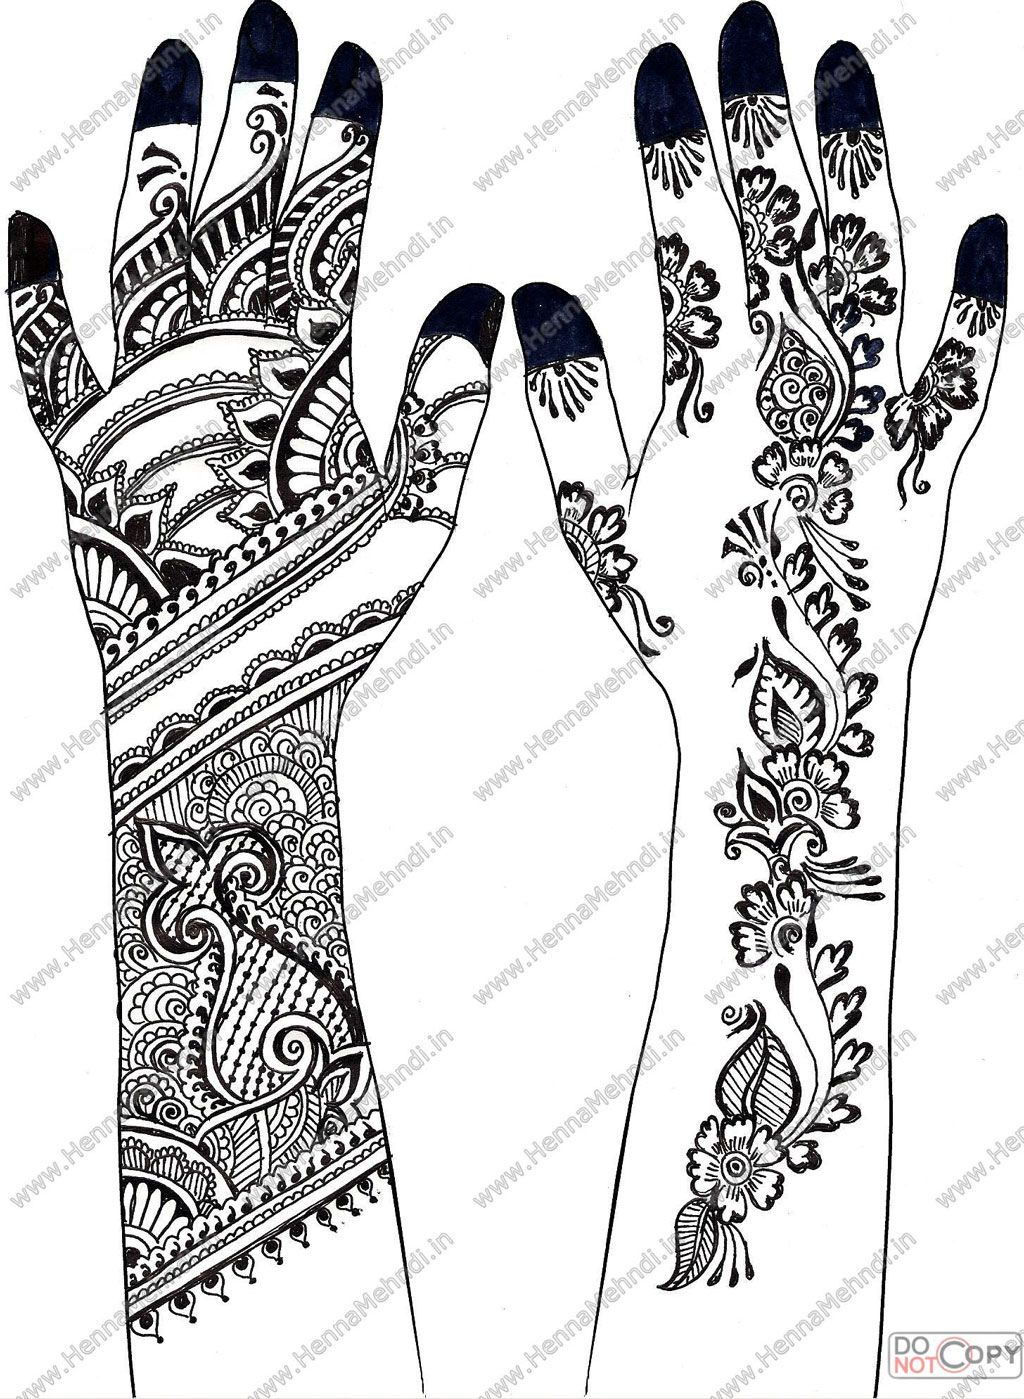 Coloring pages of mehndi hand pattern - Henna Mehndi Contains The Latest Beautiful Modern And Colorful Henna Designs These Mehndi Designs Contains All Patterns Of The Latest Designs In Mehn